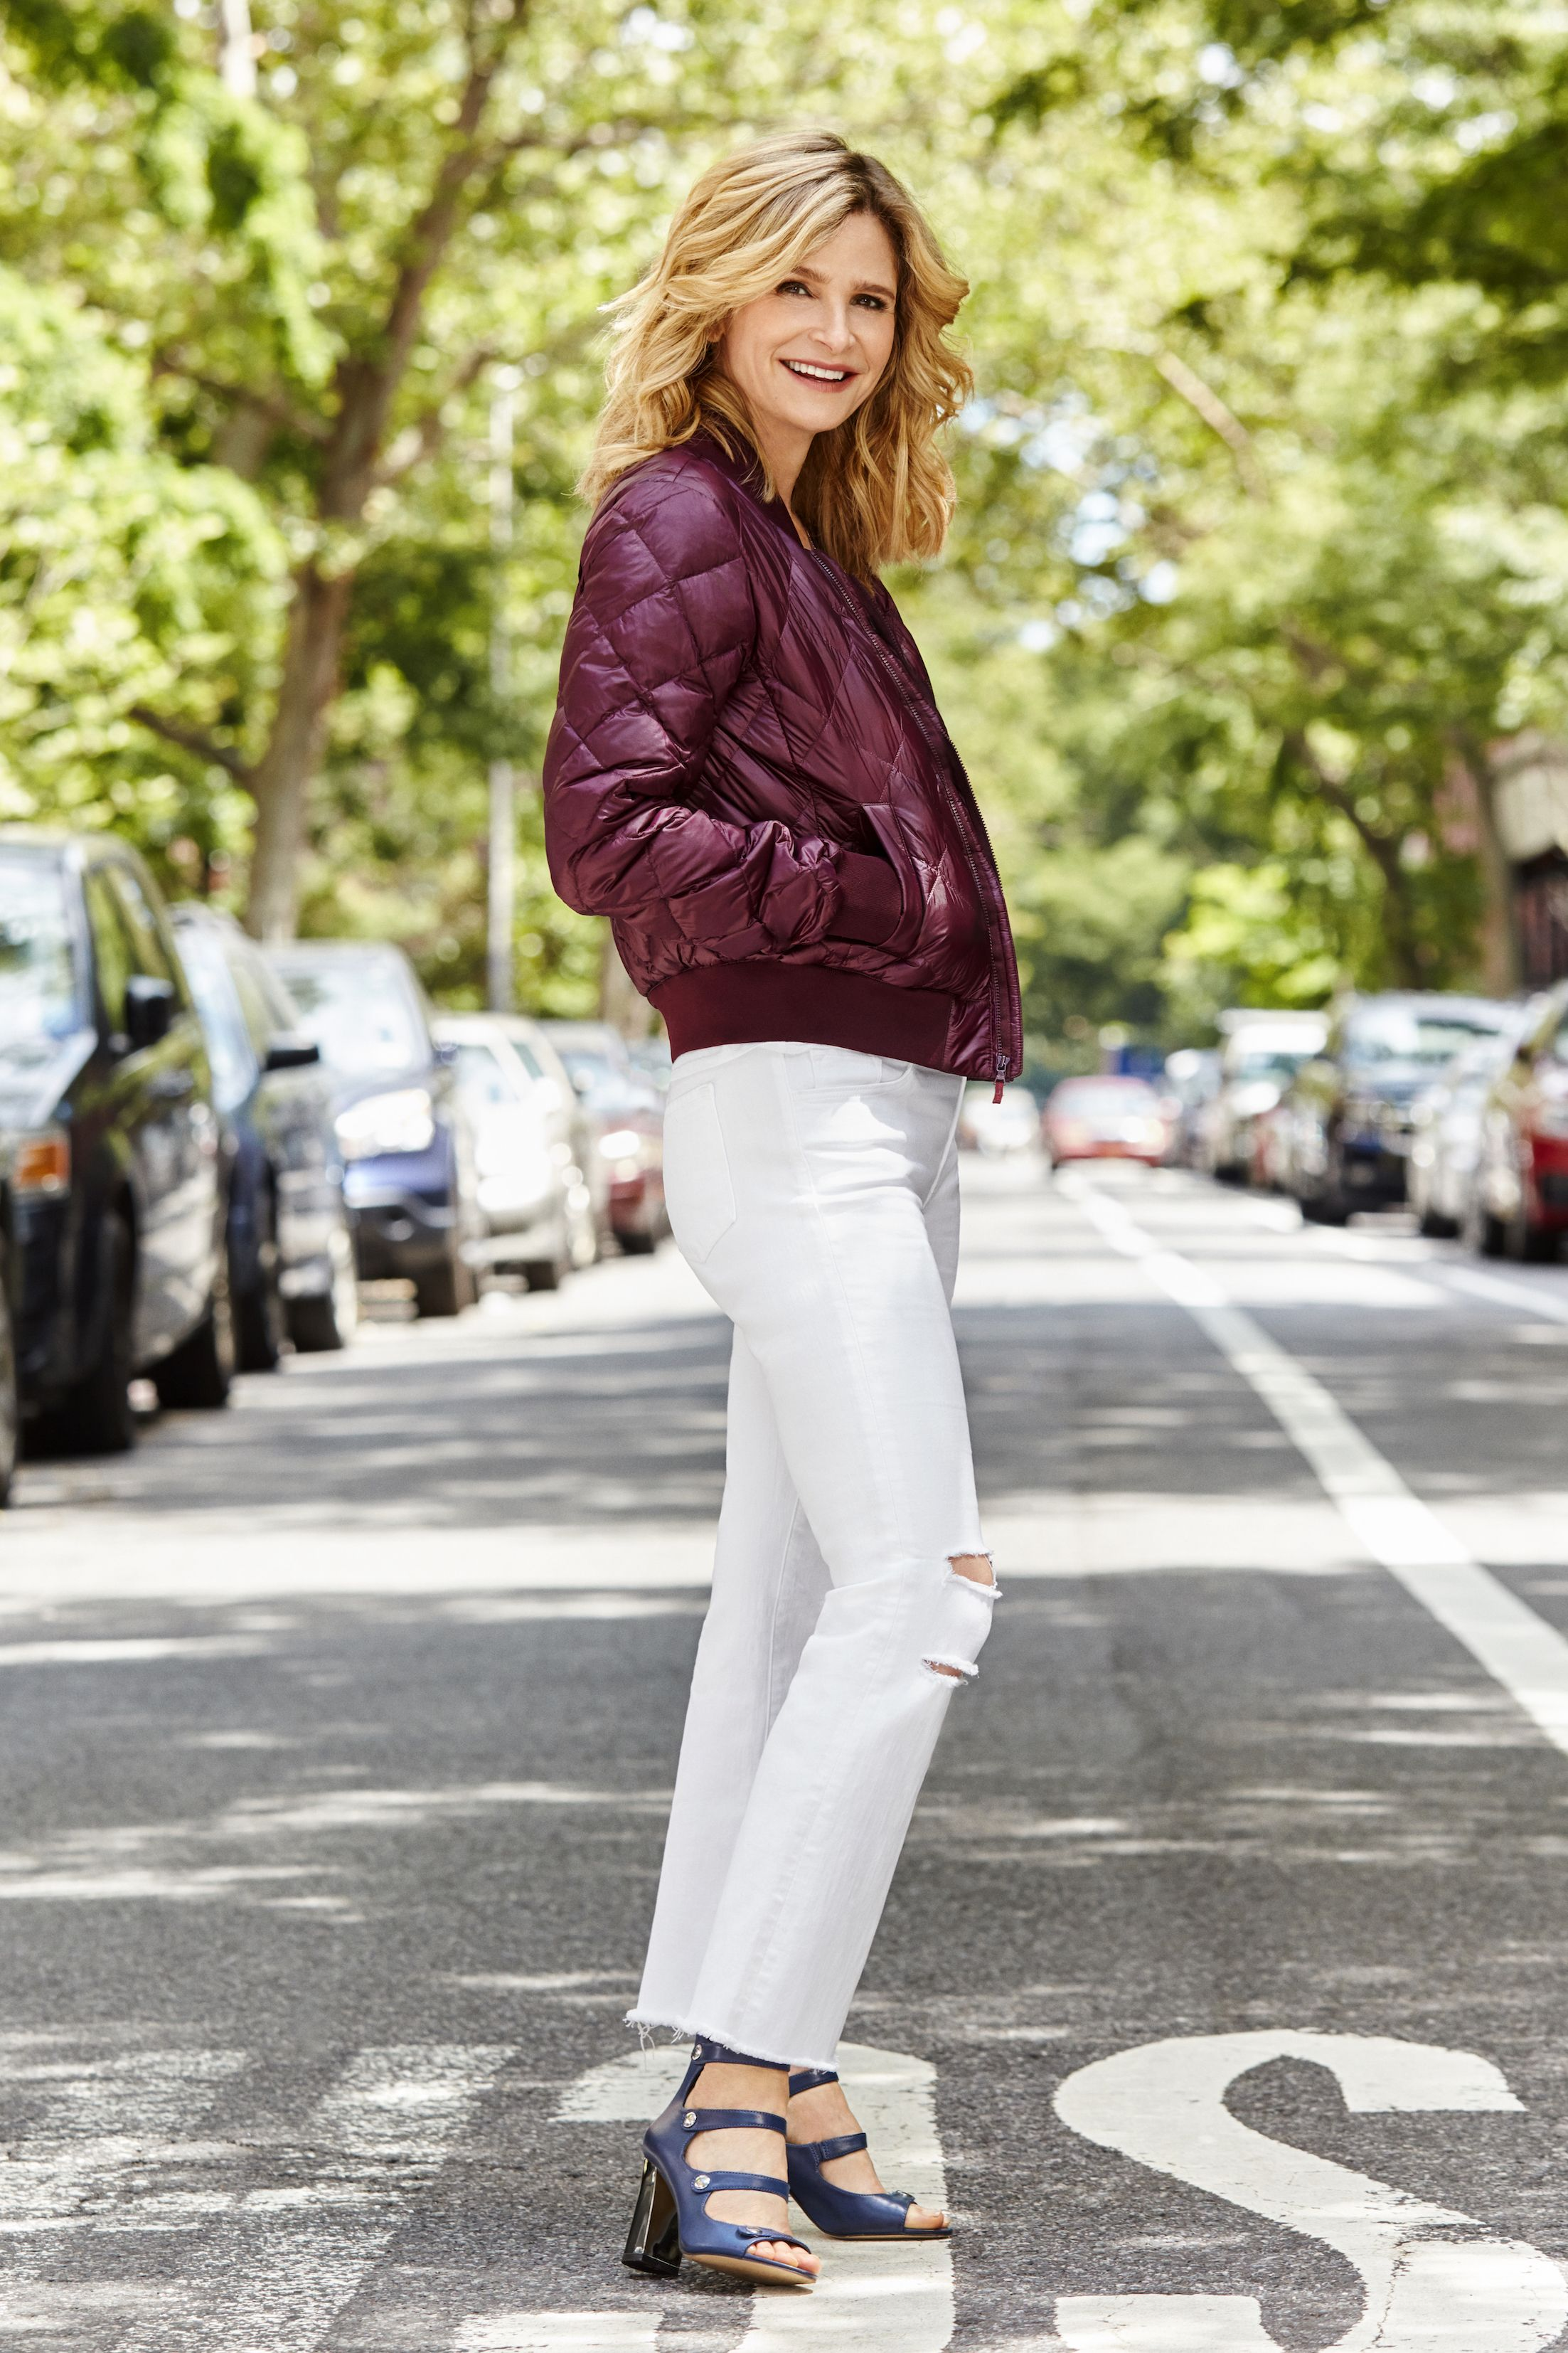 """<p>Add warmth and cool factor to your outfit with a layer that combines&nbsp&#x3B;<span>the coziness of a down jacket and the sleekness of a bomber.</span></p><p><span><em data-redactor-tag=""""em"""" data-verified=""""redactor"""">TNA for Aritzia <strong data-redactor-tag=""""strong"""" data-verified=""""redactor"""">jacket,</strong> $85, <a href=""""http://www.aritzia.com"""" target=""""_blank"""" data-tracking-id=""""recirc-text-link"""">aritzia.com</a>. <strong data-redactor-tag=""""strong"""" data-verified=""""redactor"""">Jeans, </strong>$188, <a href=""""http://jbrandjeans.com"""" target=""""_blank"""" data-tracking-id=""""recirc-text-link"""">jbrandjeans.com</a>. <strong data-redactor-tag=""""strong"""" data-verified=""""redactor"""">Heels,</strong> $89, <a href=""""http://www.marcfisherfootwear.com"""" target=""""_blank"""" data-tracking-id=""""recirc-text-link"""">marcfisherfootwear.com</a>.&nbsp&#x3B;</em></span></p><p><span><strong data-redactor-tag=""""strong"""" data-verified=""""redactor"""">BEAUTY TIP:</strong><em data-redactor-tag=""""em"""" data-verified=""""redactor"""">&nbsp&#x3B;</em></span><span>Ask your colorist&nbsp&#x3B;</span><span>to add slightly lighter&nbsp&#x3B;</span><span>highlights to the&nbsp&#x3B;</span><span>strands framing your&nbsp&#x3B;</span><span>face to illuminate&nbsp&#x3B;</span><span>your skin, à la Kyra.</span></p>"""